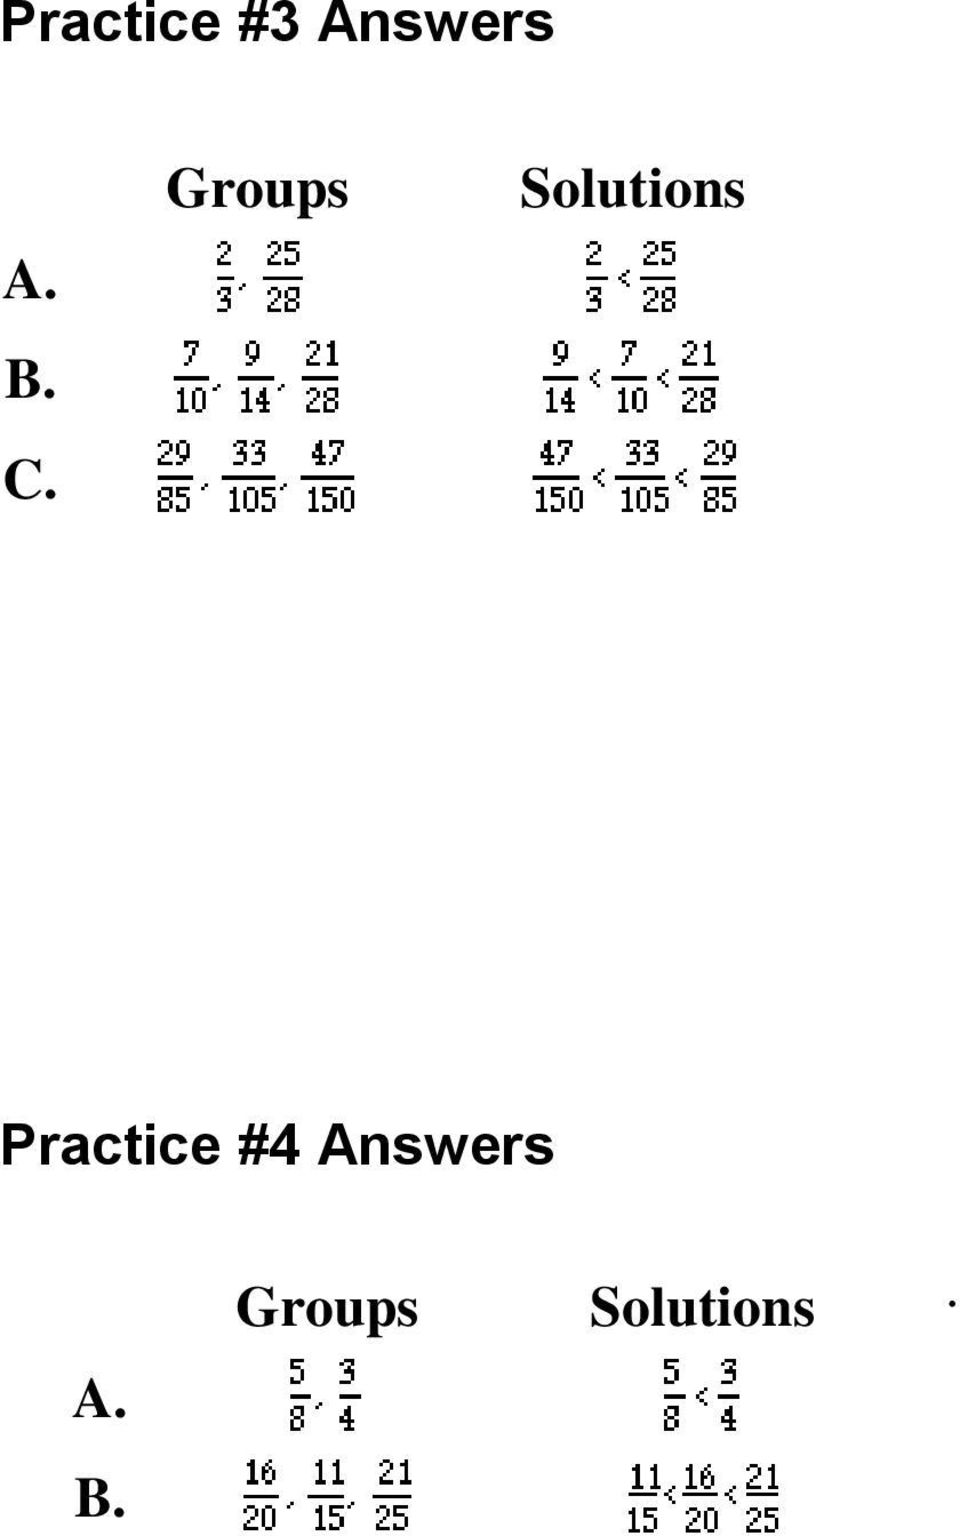 Practice #4 Answers A.